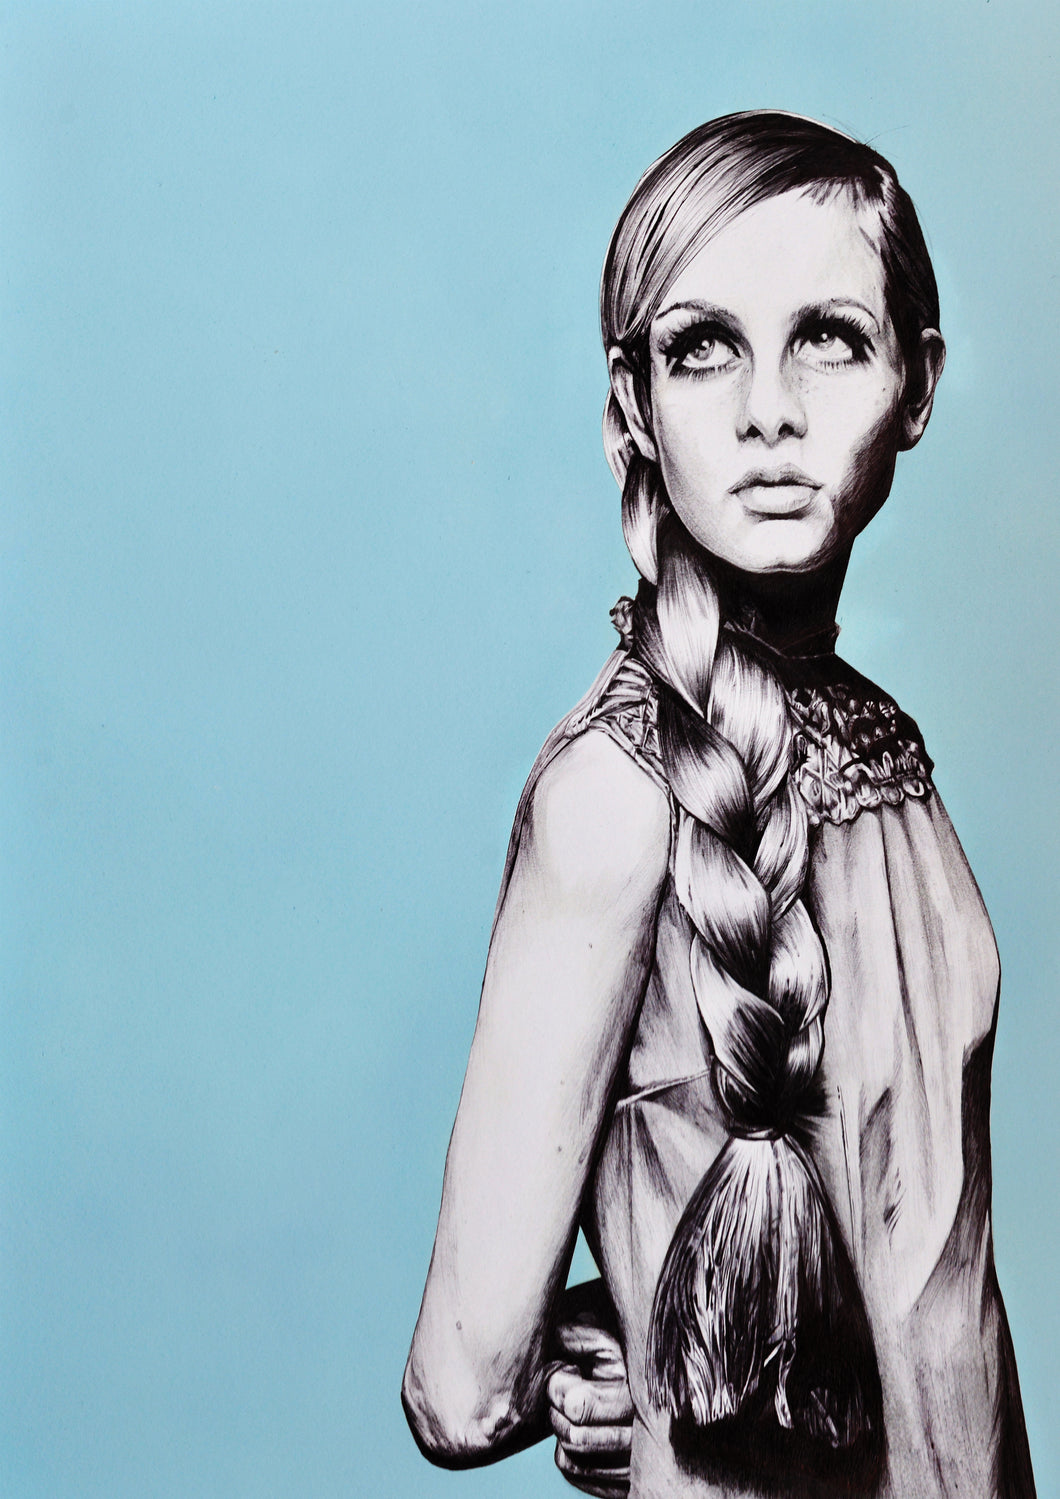 Original artwork: Twiggy